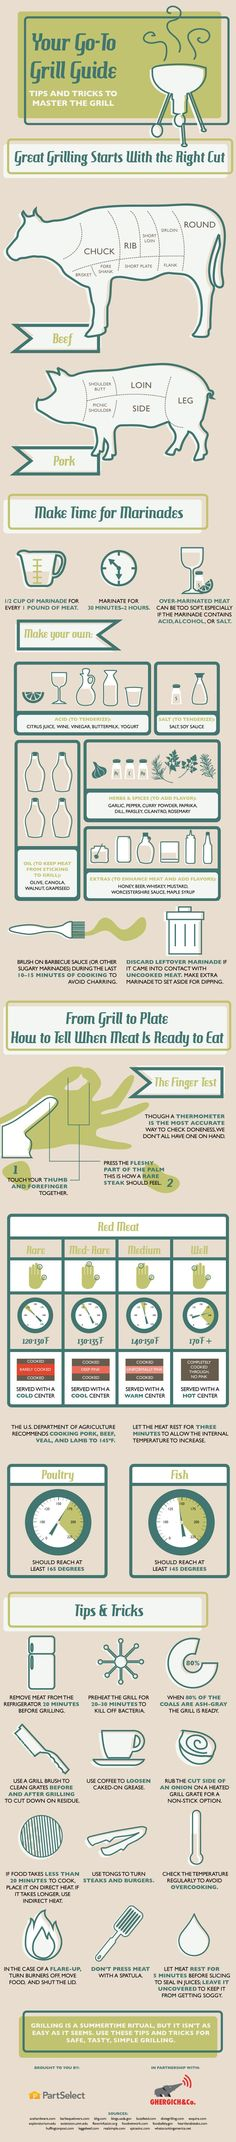 Your Go-To Grill Guide: Tips and Tricks to Master the Grill #Grilling